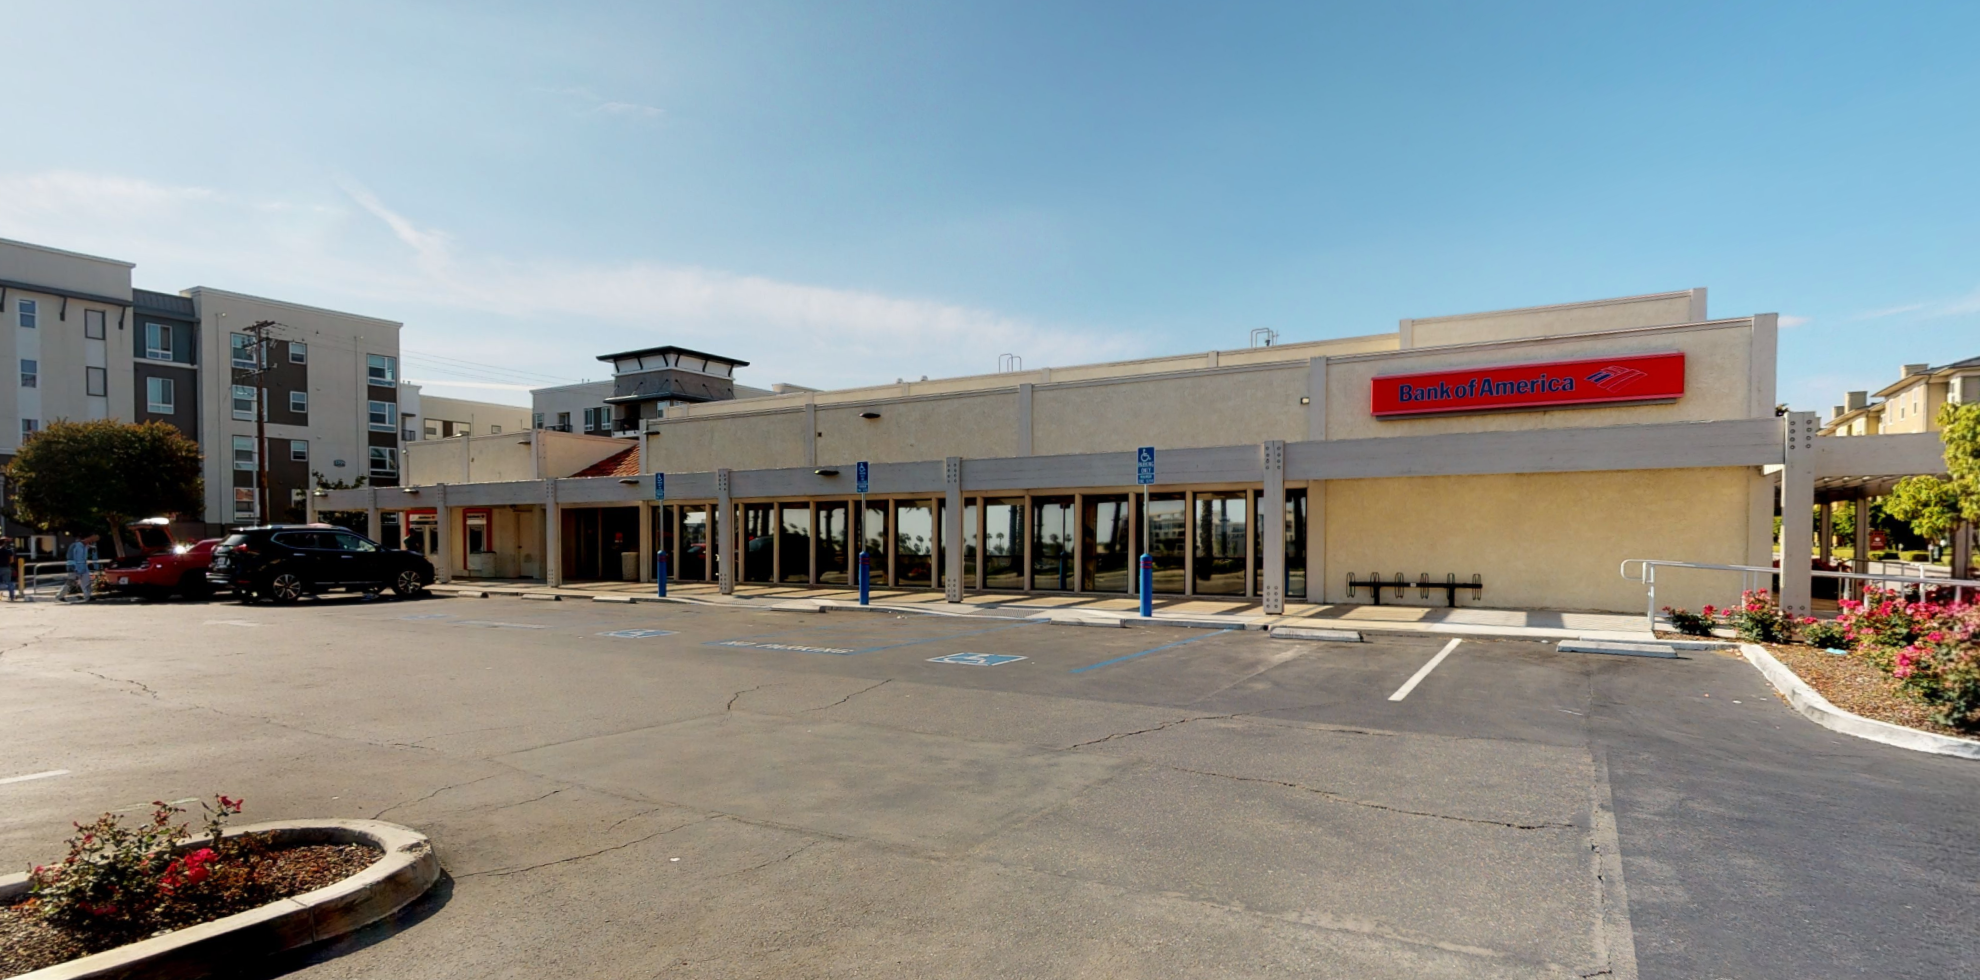 Bank of America financial center with drive-thru ATM | 1701 E Katella Ave, Anaheim, CA 92805